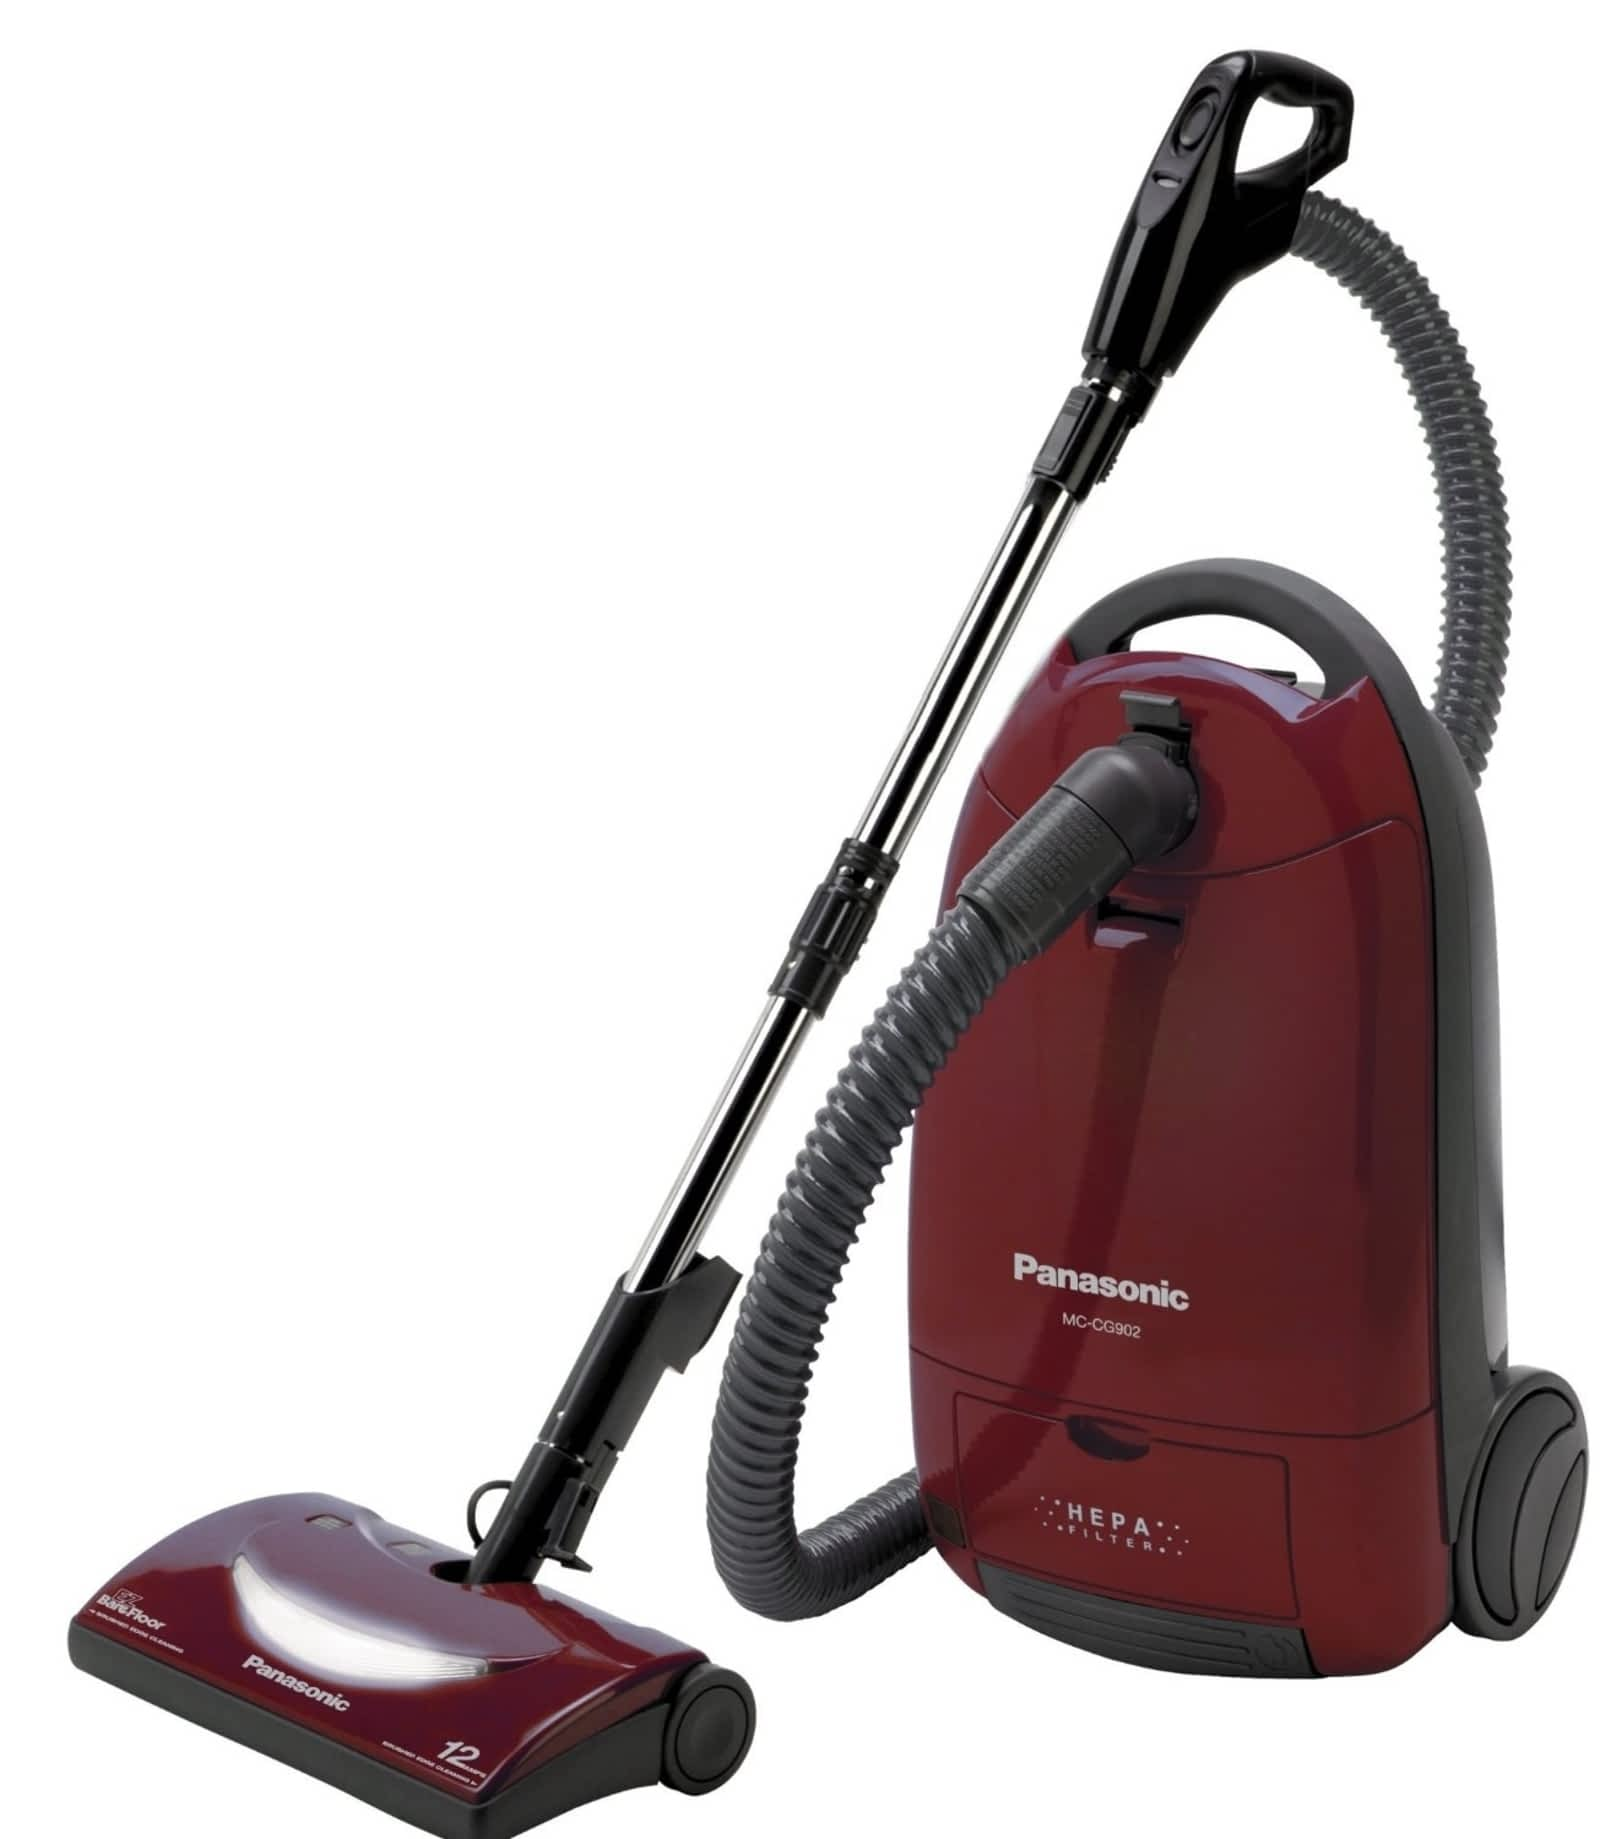 Buy a mini vacuum cleaner for dusting